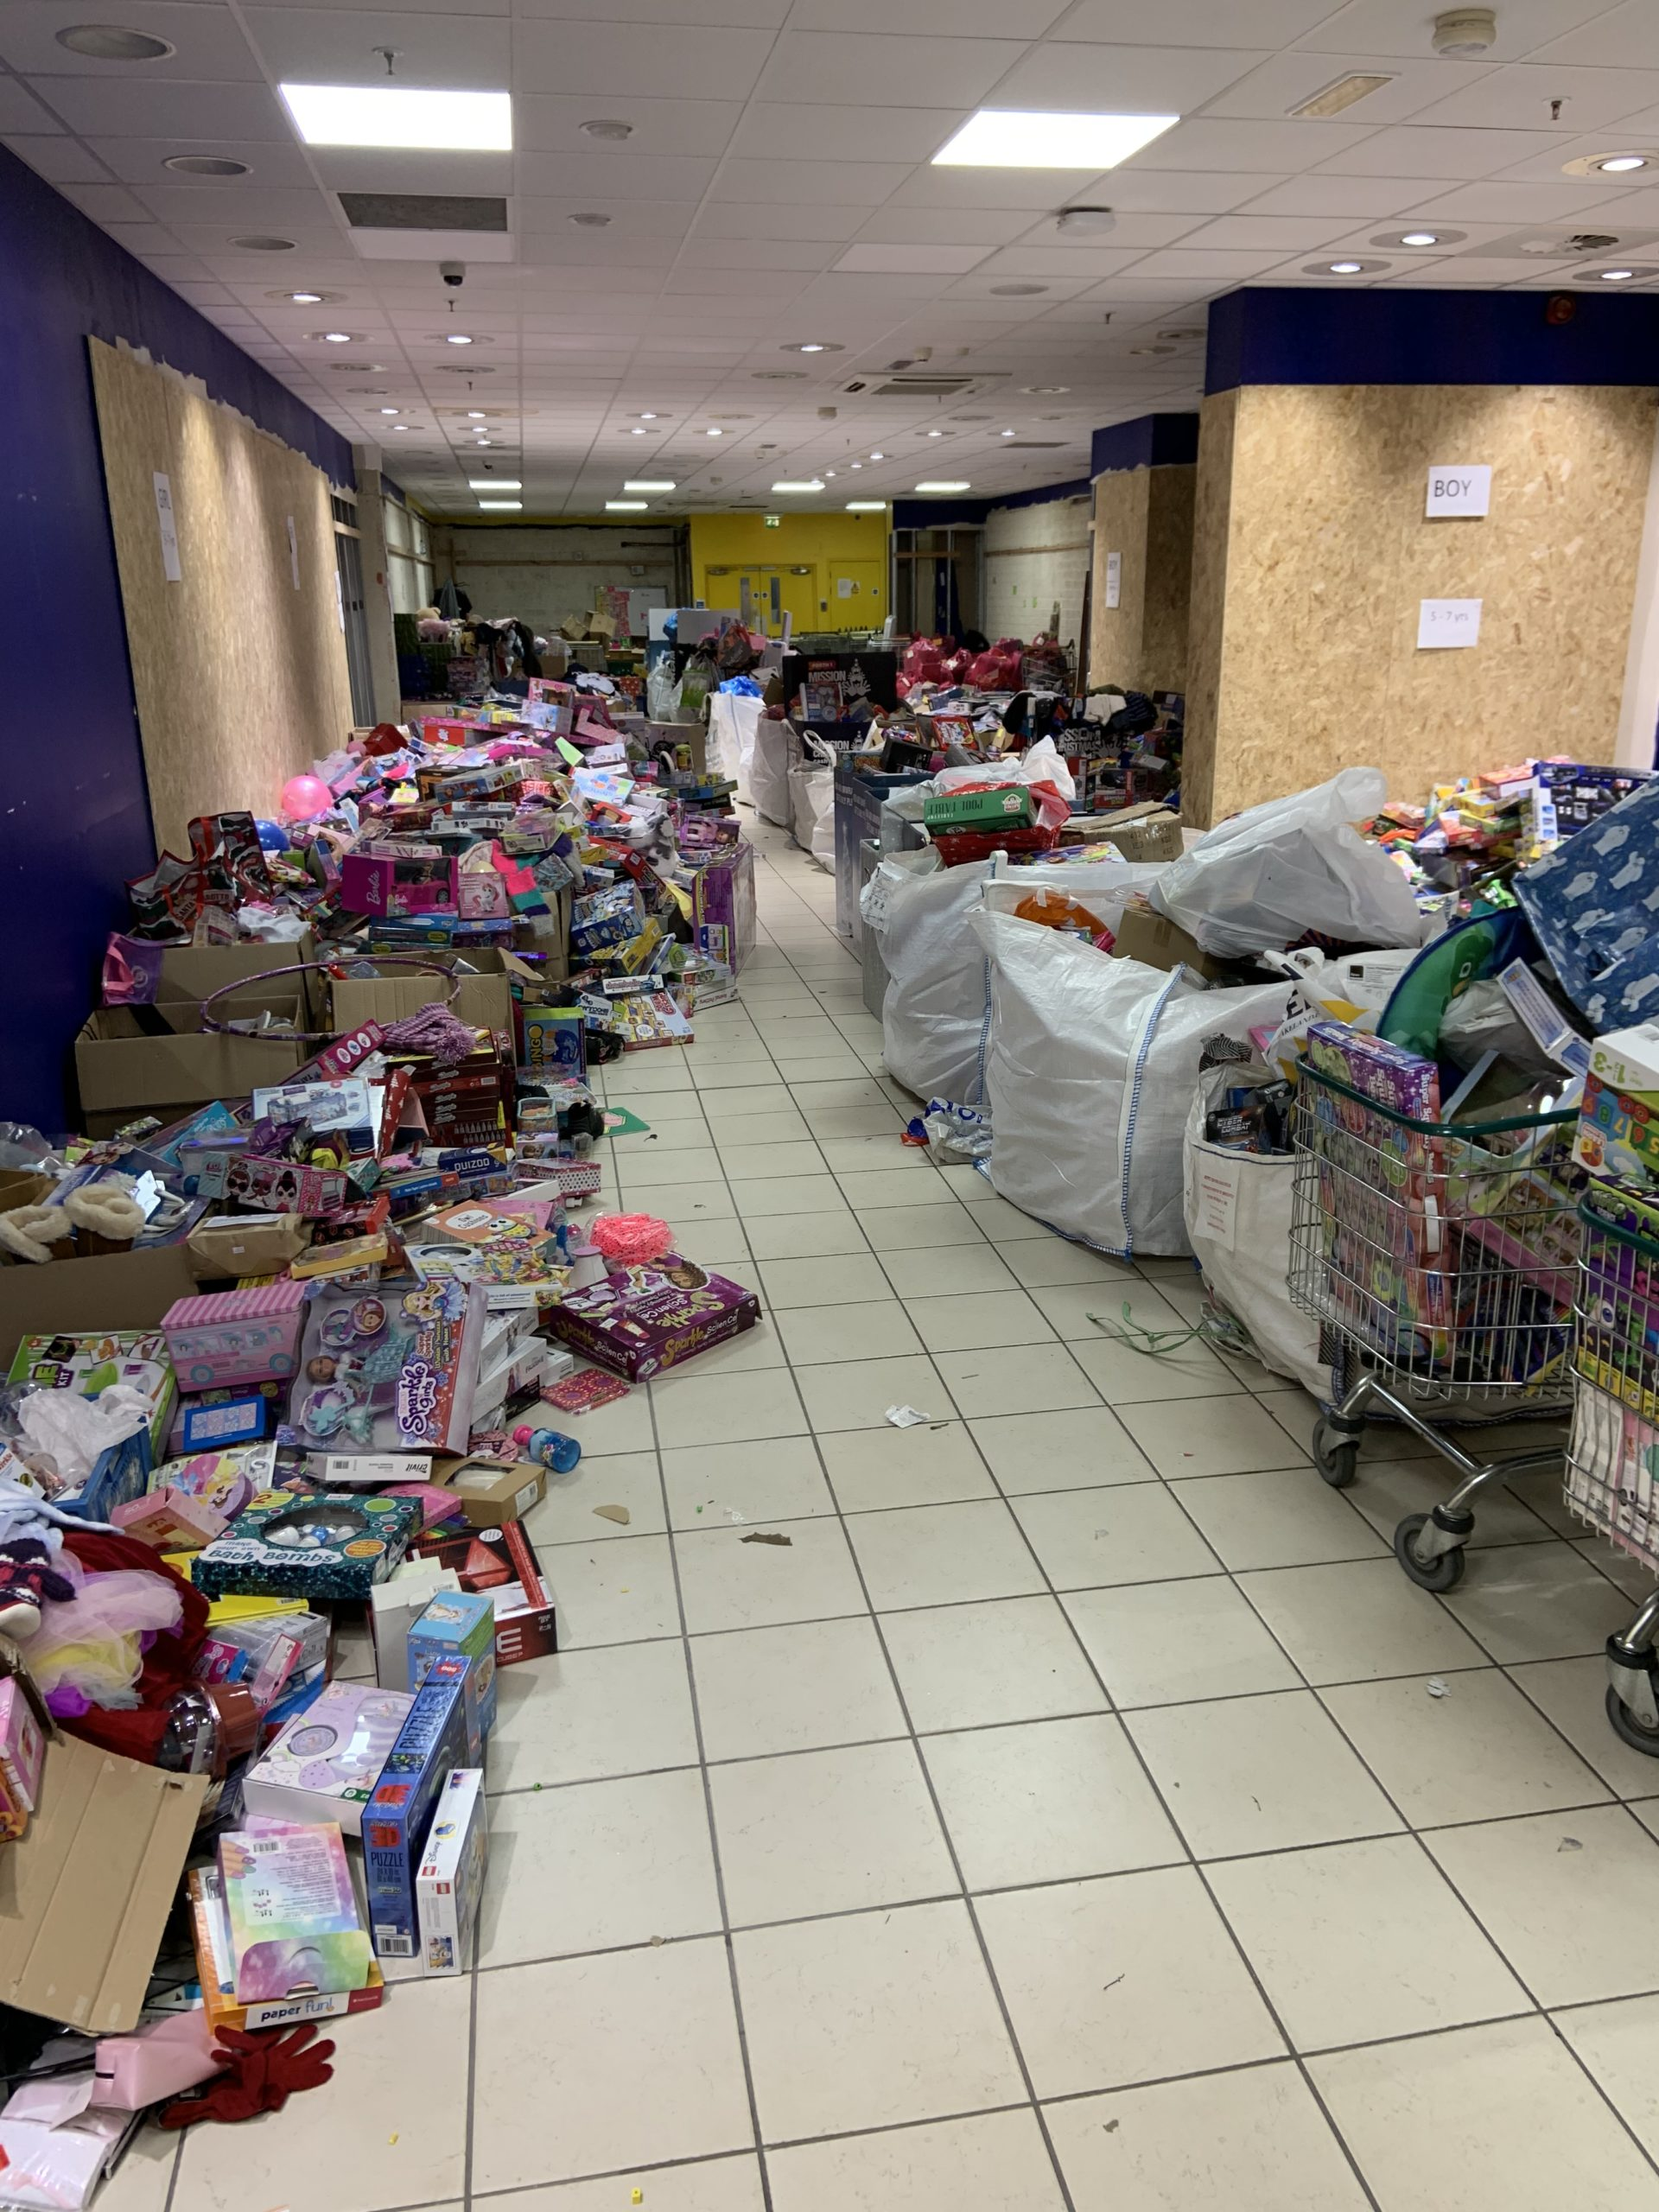 Saltire Delivers 1k Of Gifts To Kids In Need This